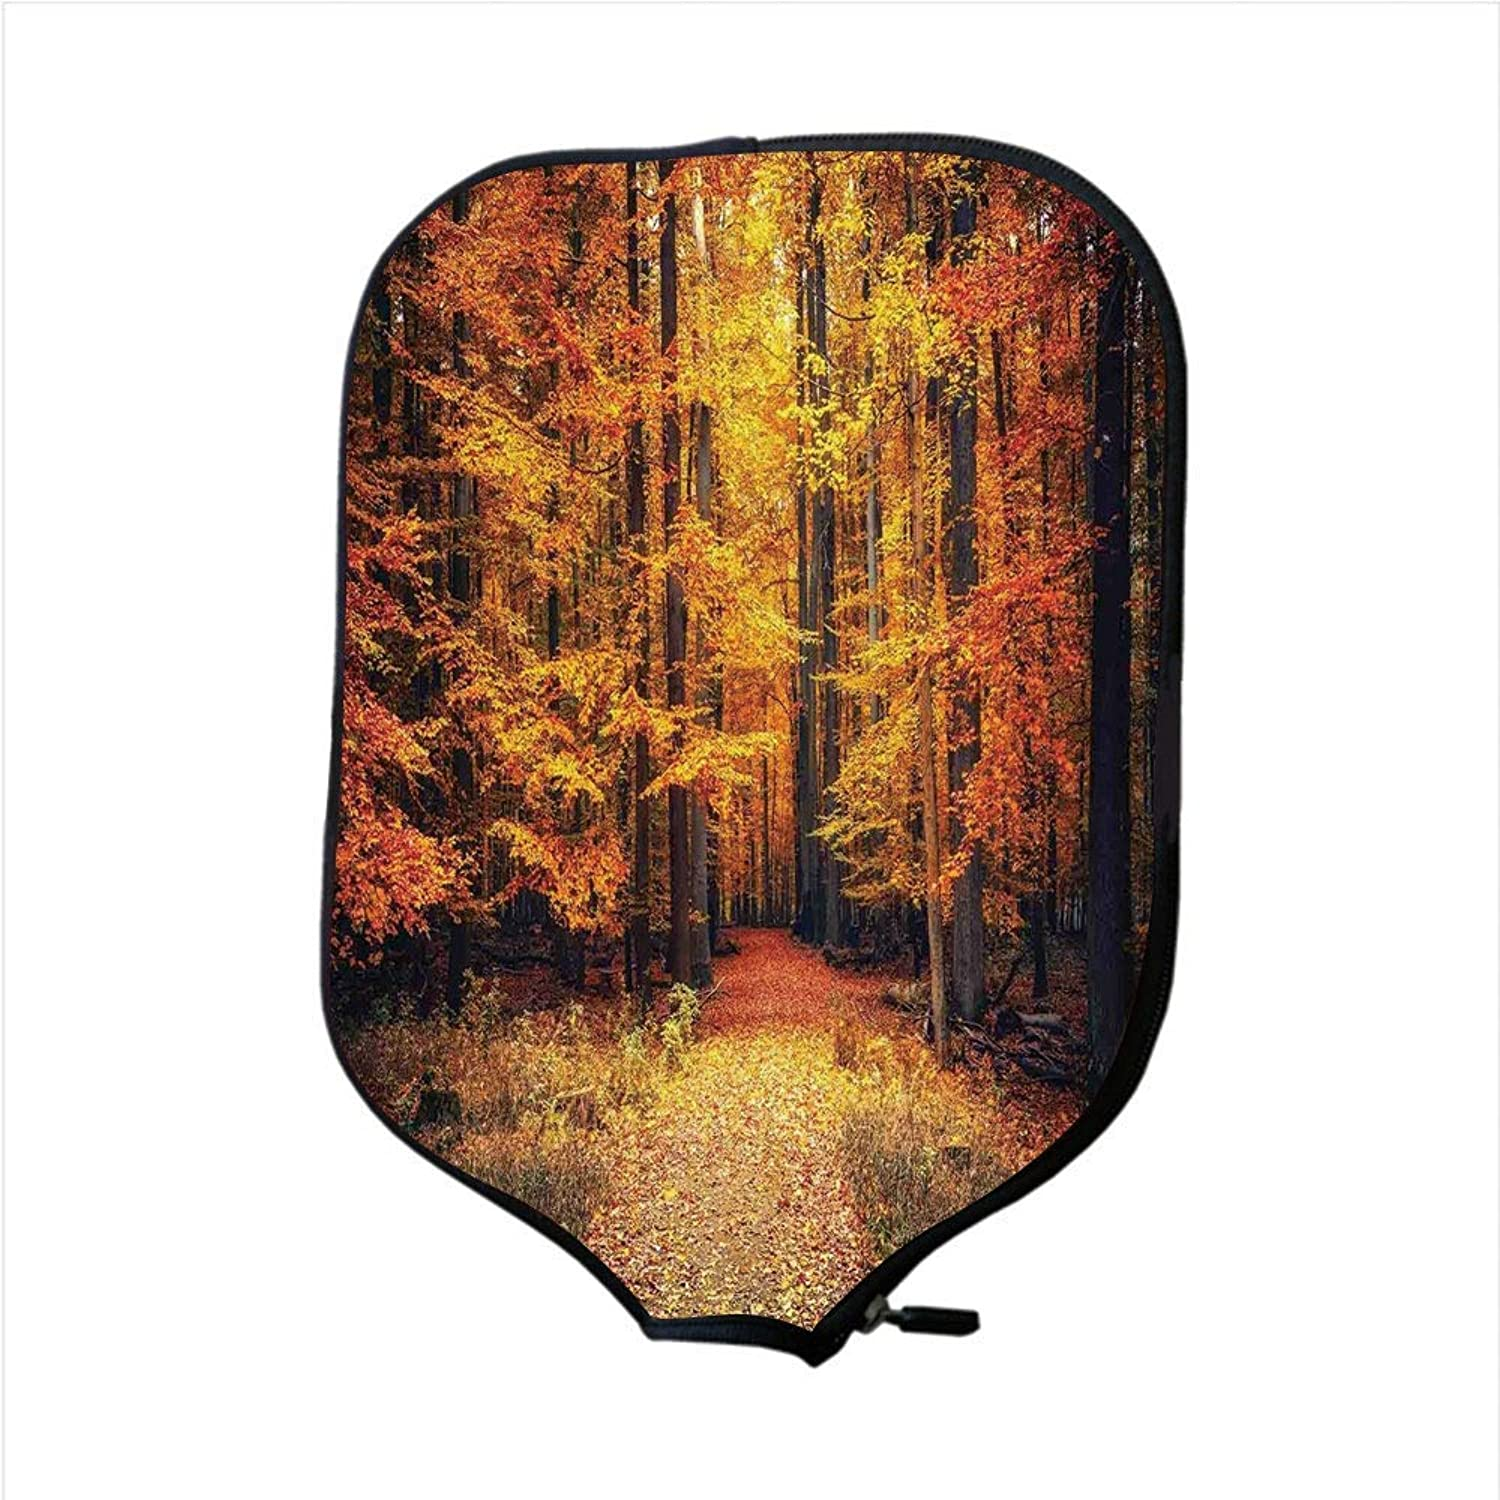 Fine Neoprene Pickleball Paddle Racket Cover Case,Farm House Decor,Magical Fall Photo in National Park with Vivid Leaf Plant Eco Earth Mystical Theme,orange Brown,Fit for Most Rackets